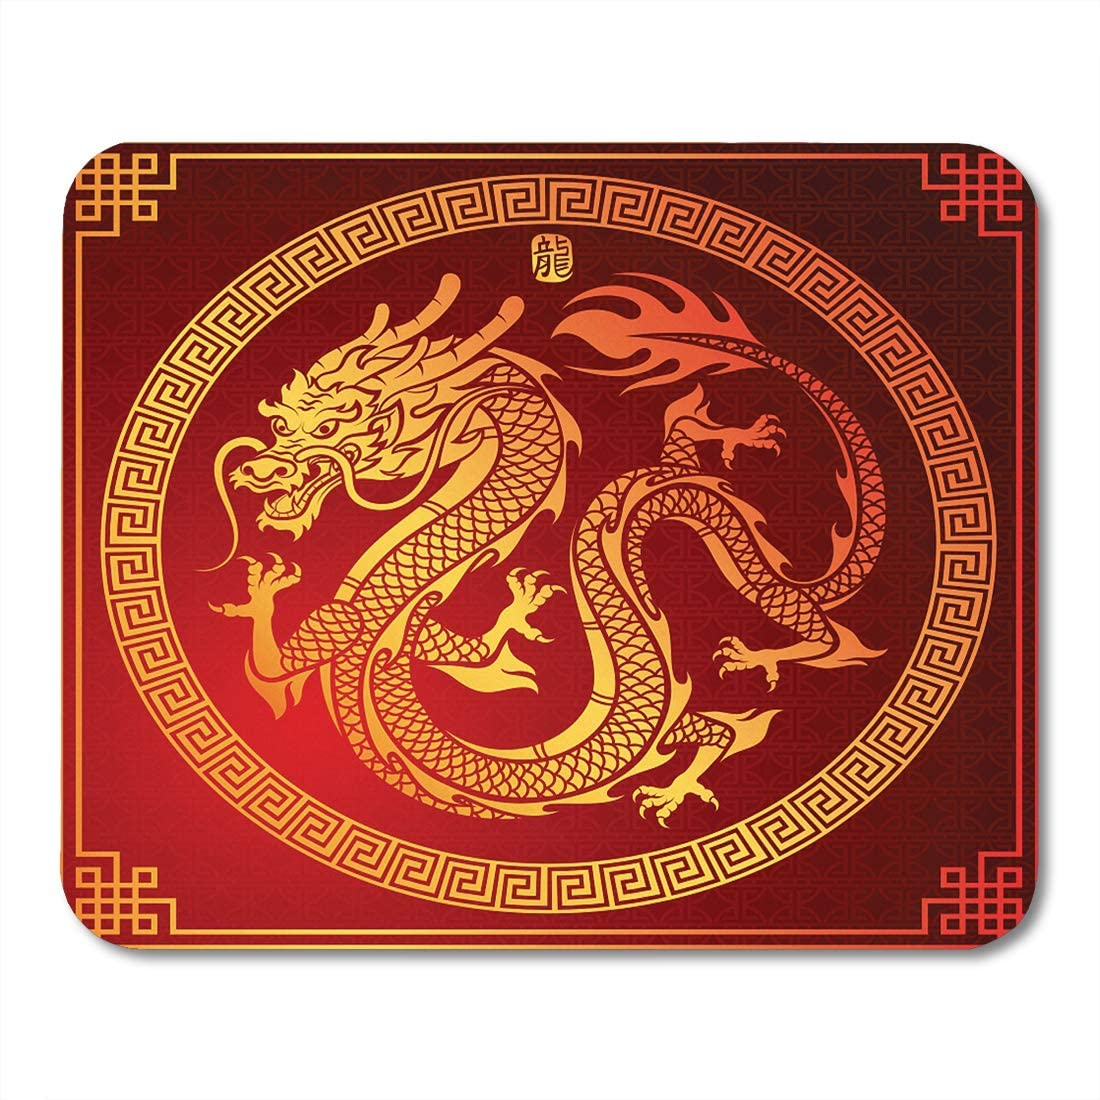 Chinese Digital Artwork of a Woman in a Traditional Dress,7.9 x 9.5 in Rectangular Mousemat Mousepad